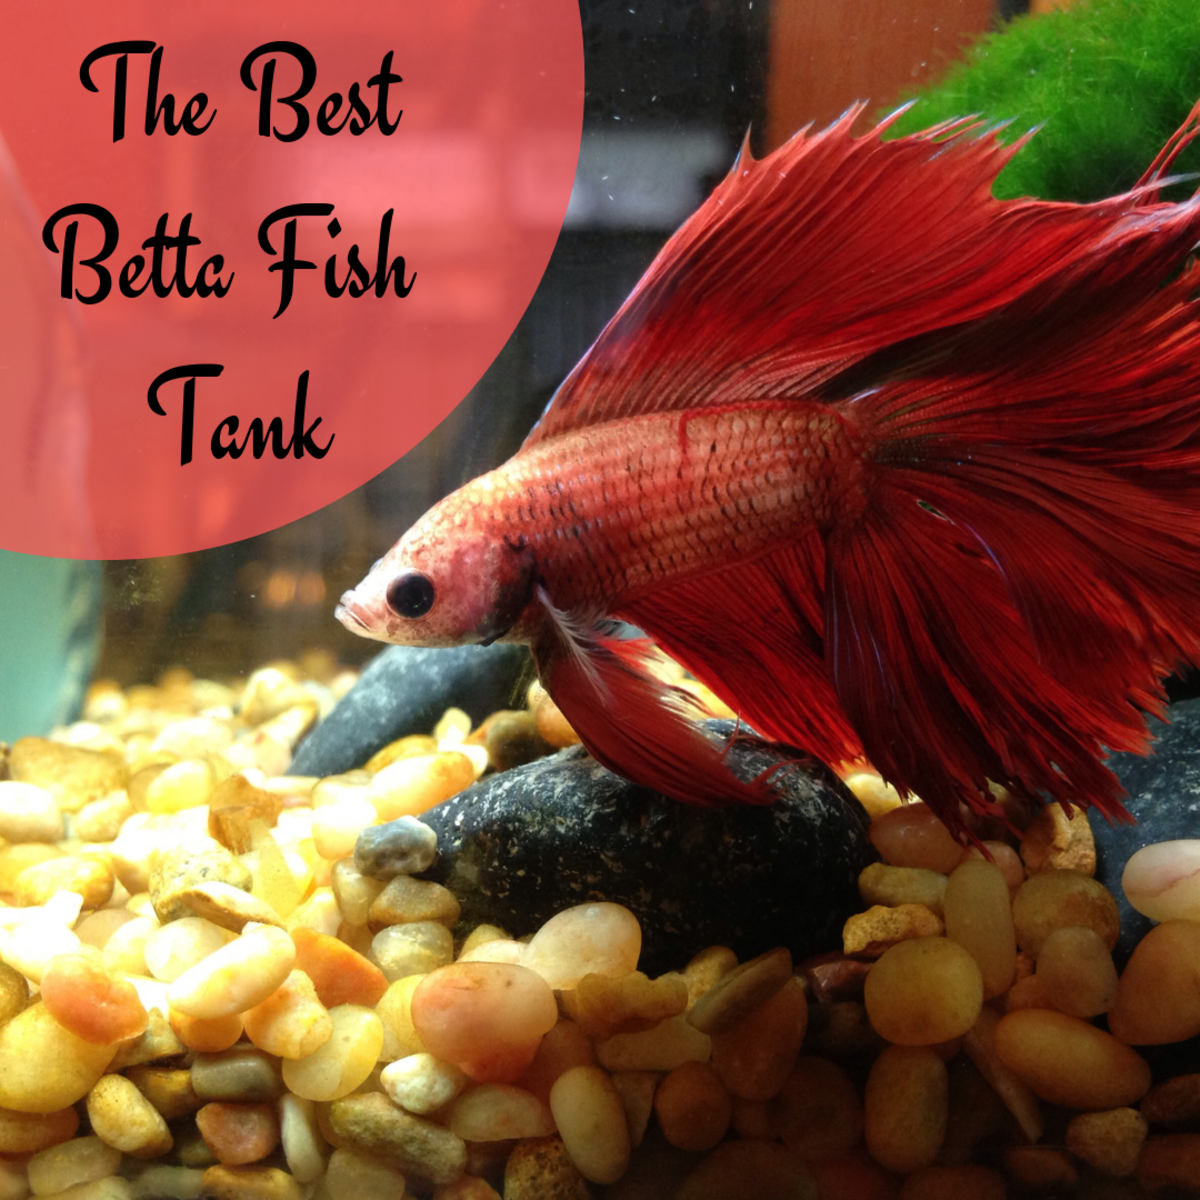 Discover the recommended setup for your betta fish tank to ensure that your fish lead long, happy lives.